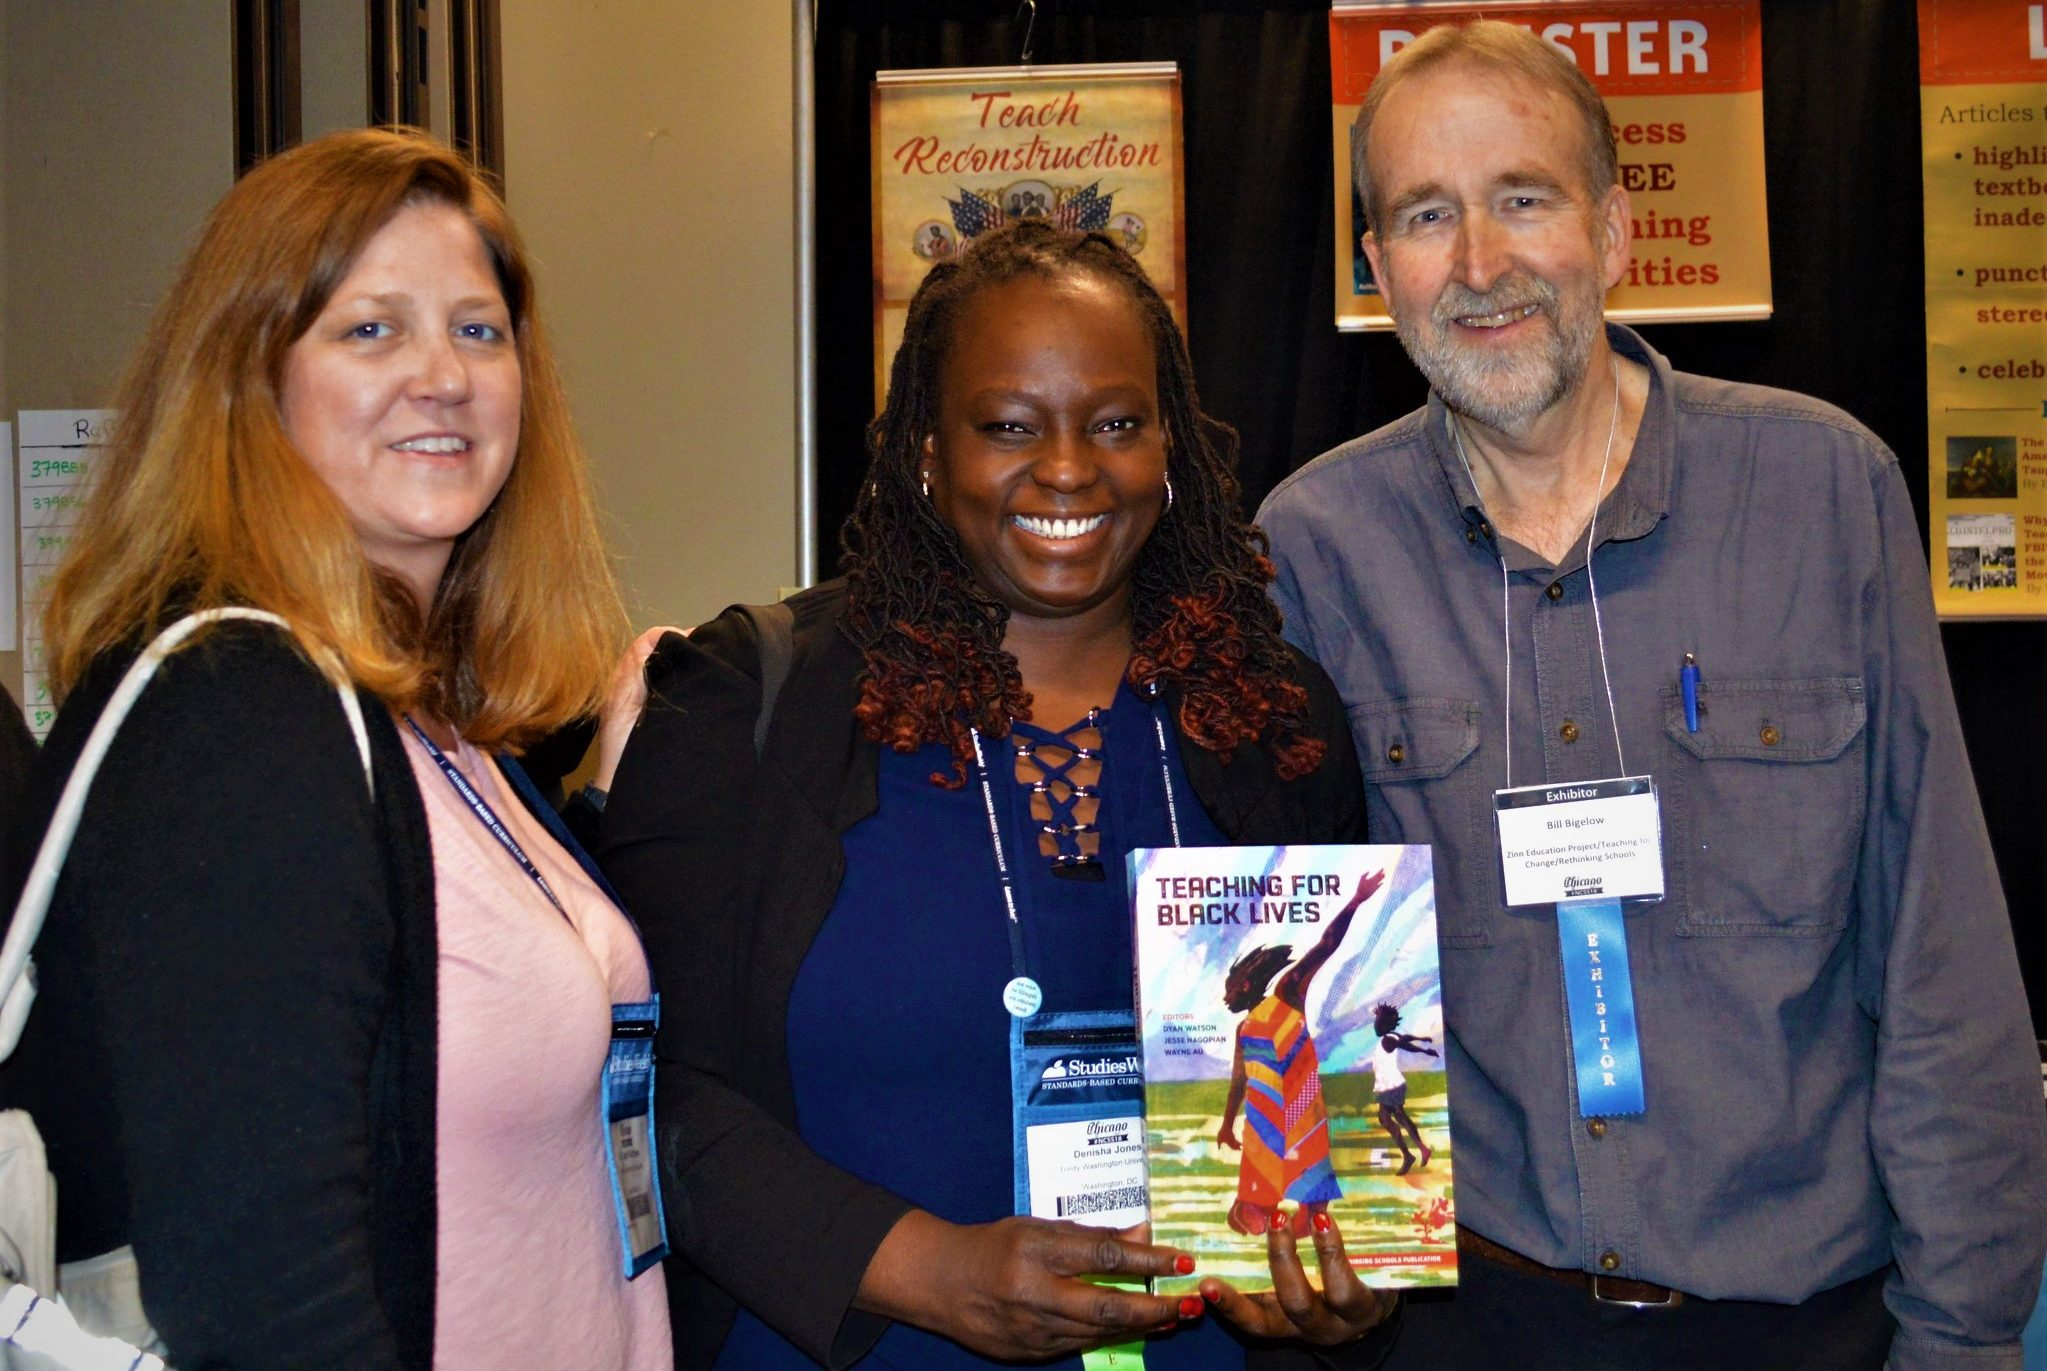 Bill Bigelow and two women at NCSS Chicago 2018 smiling, pose with the book Teaching For Black Lives.